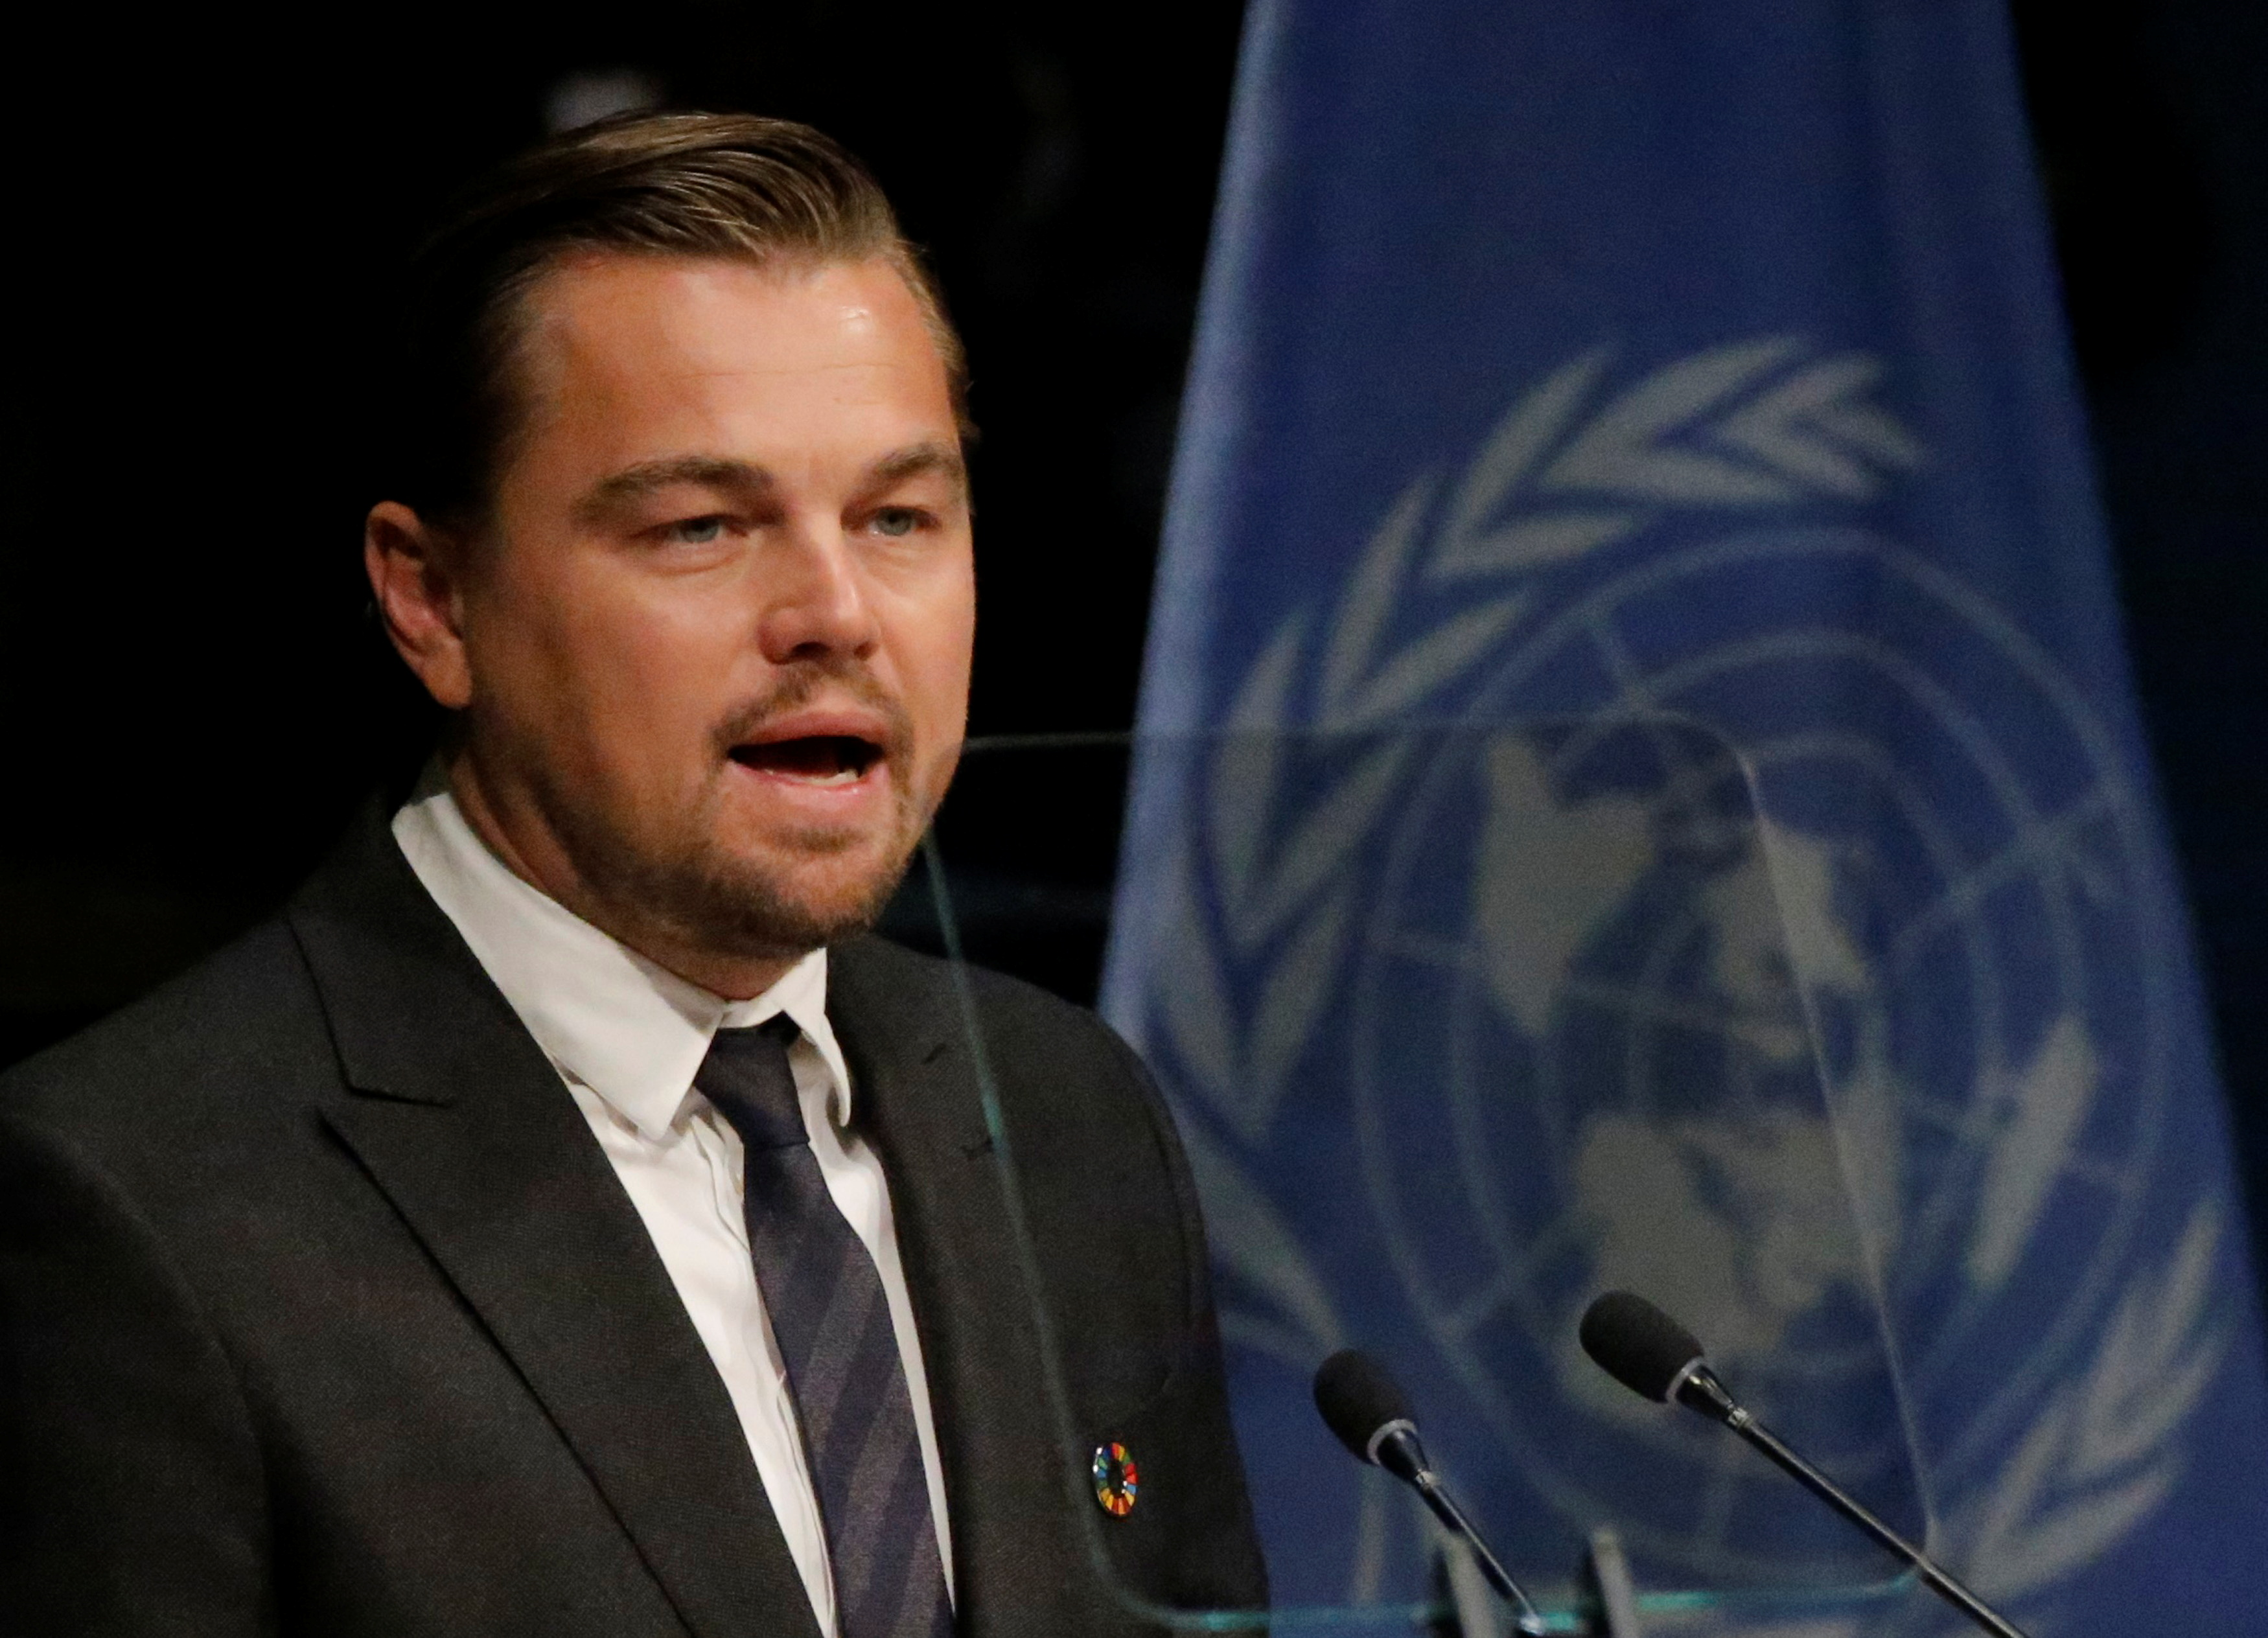 Actor Leonardo DiCaprio delivers his remarks during the Paris Agreement on climate change held at the United Nations Headquarters in Manhattan, New York, U.S., April 22, 2016.  REUTERS/Carlo Allegri